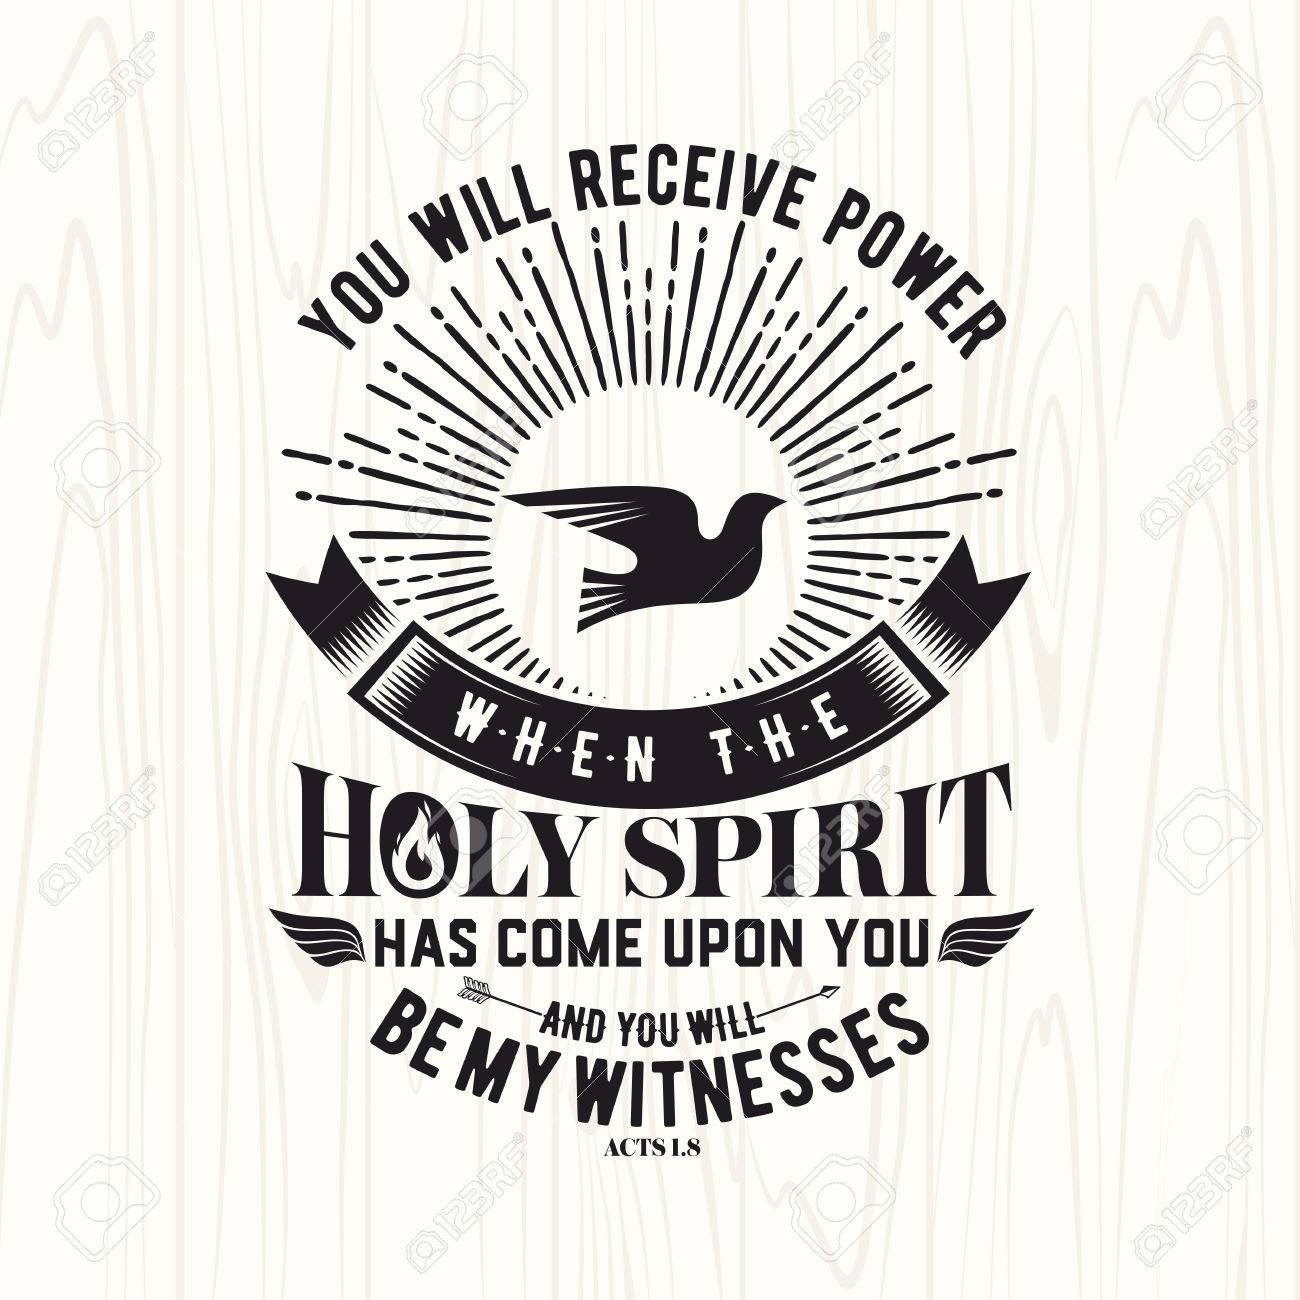 Biblical illustration  Christian lettering  You will receive